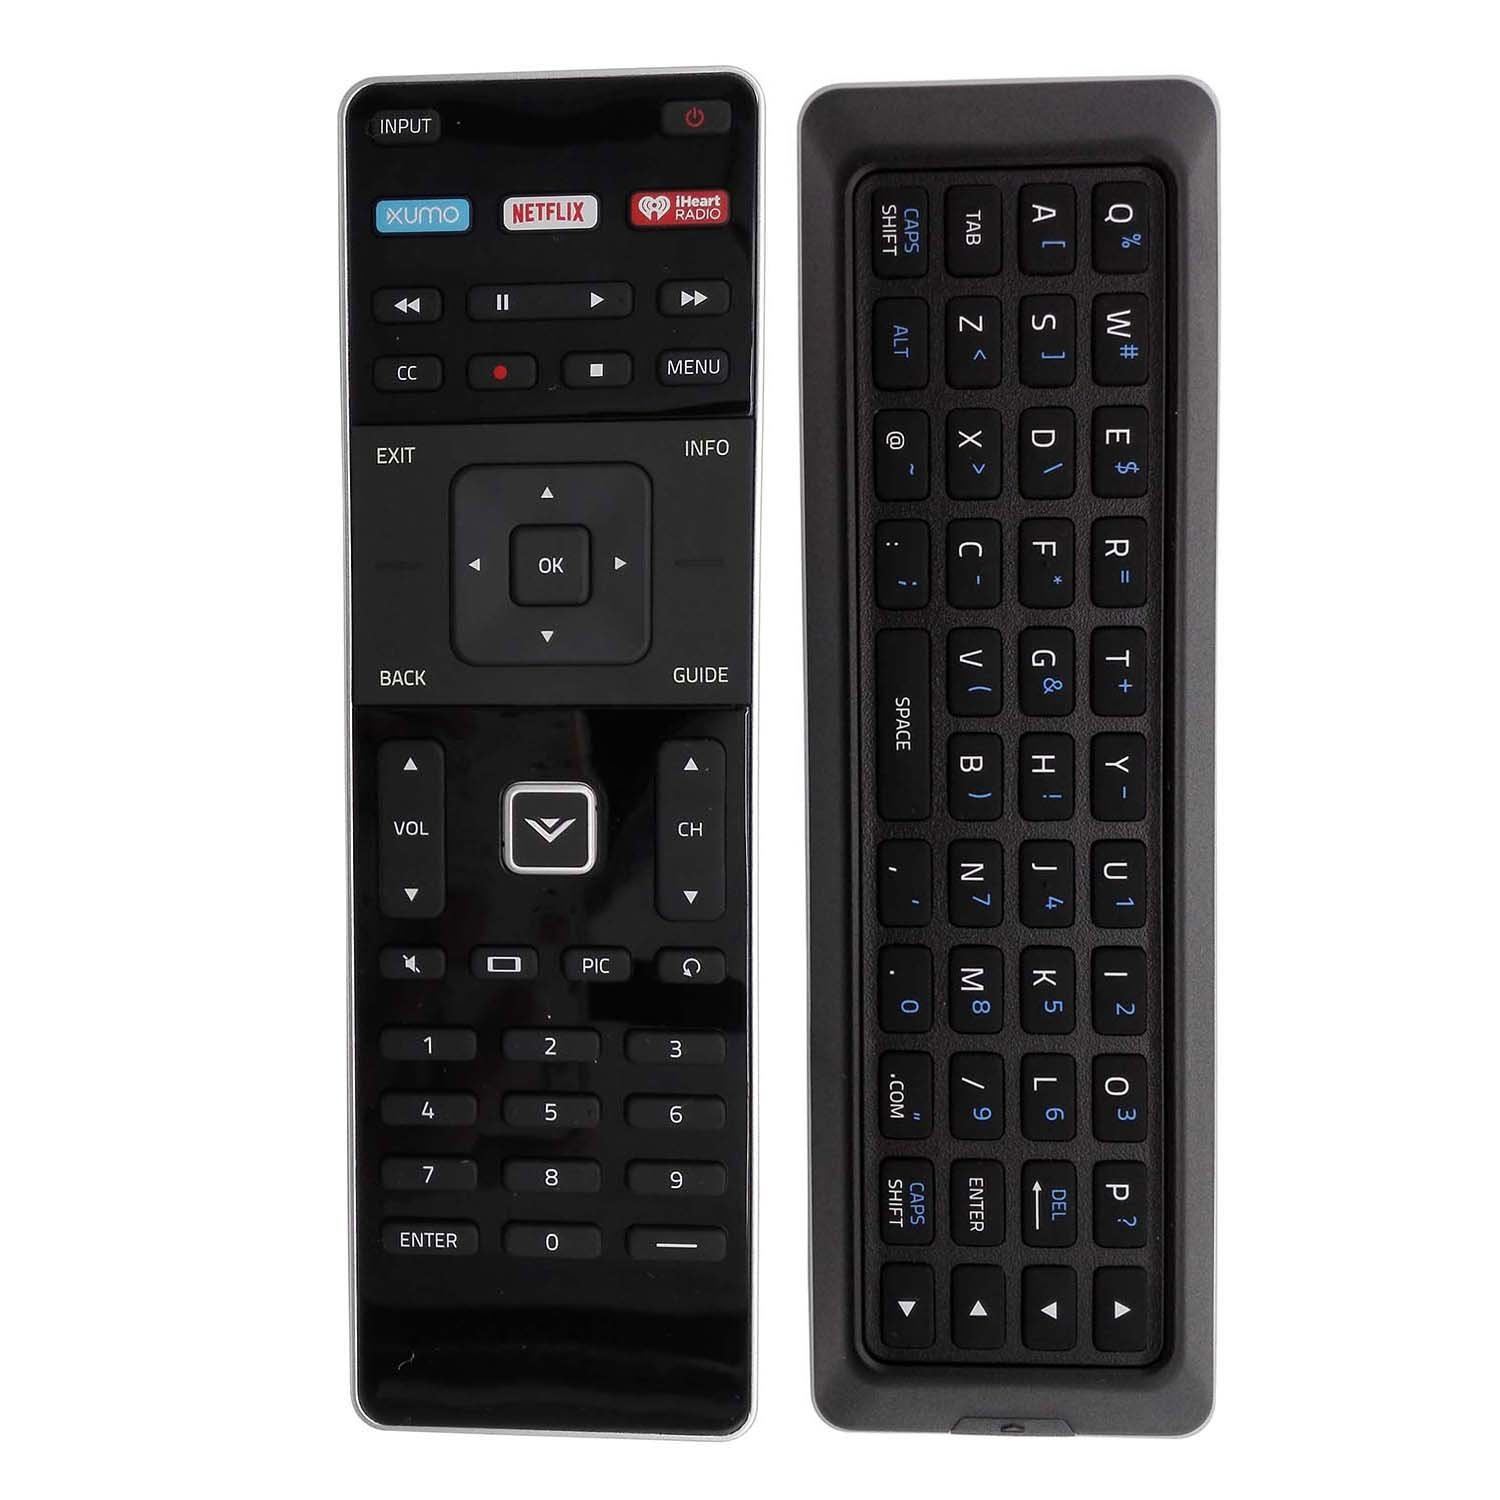 New XUMO XRT500 TV Remote with Keyboard for Vizio TV M43-C1 M49-C1 M50-C1 M55-C2 M60-C3 M65-C1 M70-C3 M75-C1 M80-C3 M322I-B1 M422I-B1 M492I-B2 M502I-B1 M552I-B2 M602I-B3